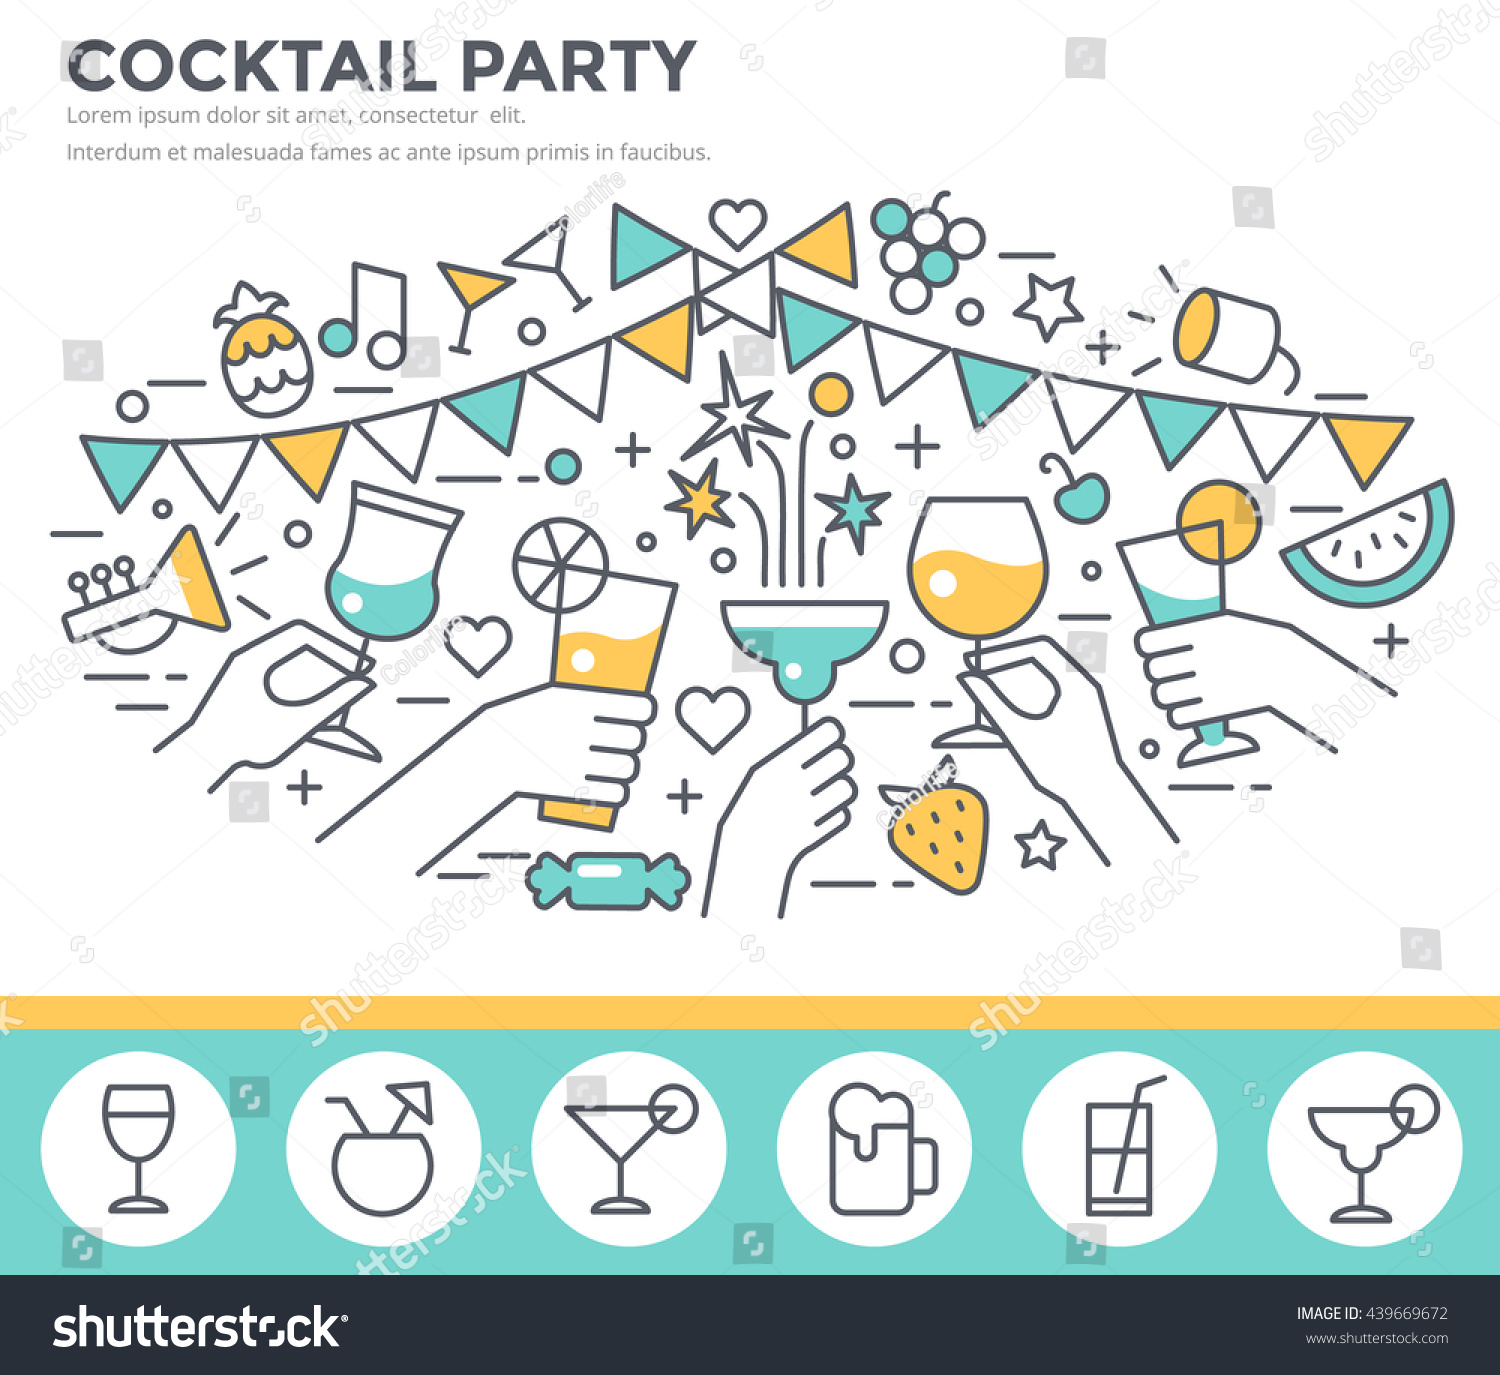 cocktail party invitation concept template hands stock vector cocktail party invitation concept template hands of friends alcohol drinks making toast vector illustration